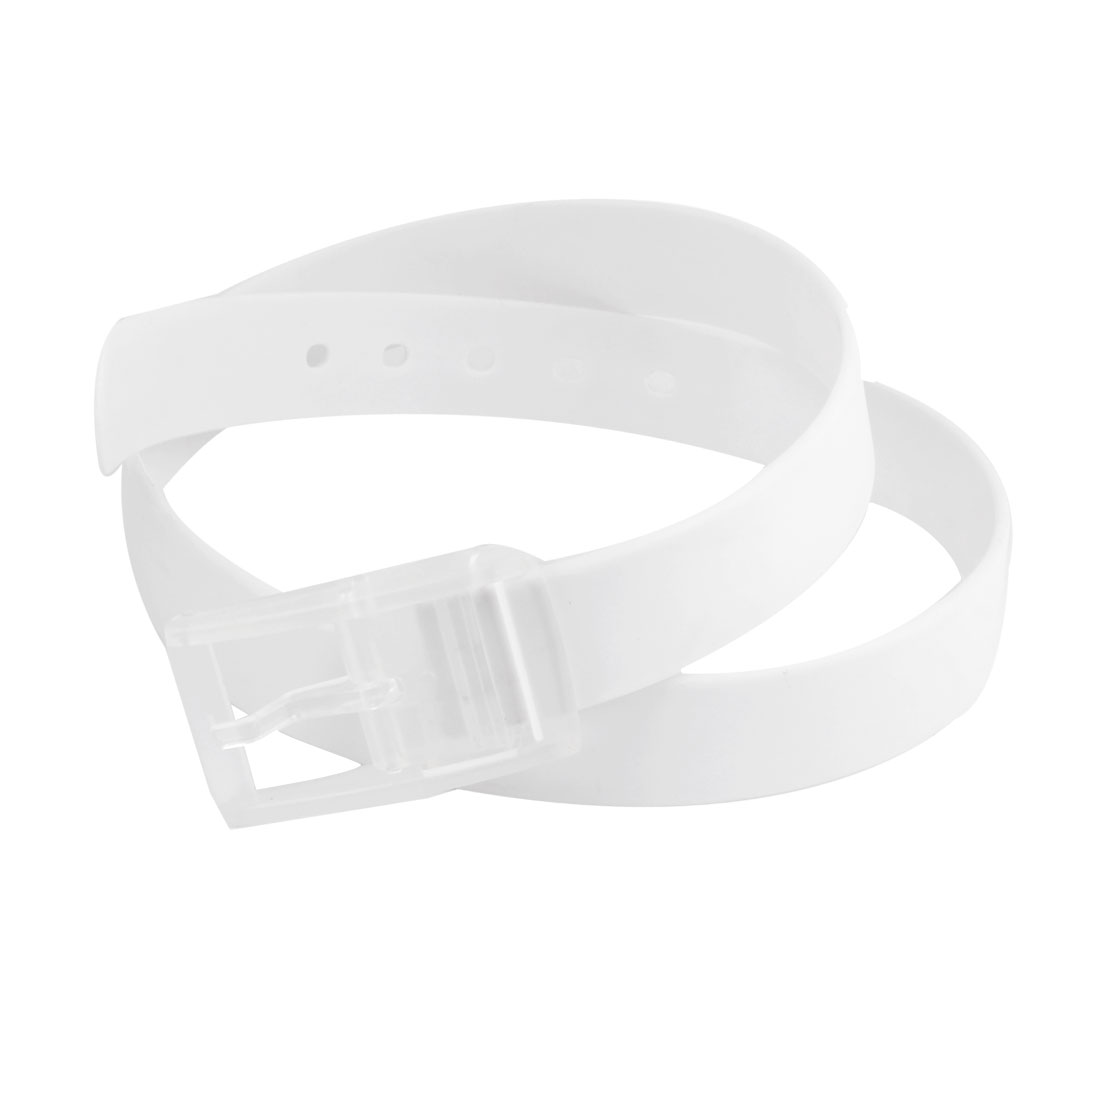 Unisex White Soft Silicone 5 Hole Band Single Allergy Free Buckle Waist Belt